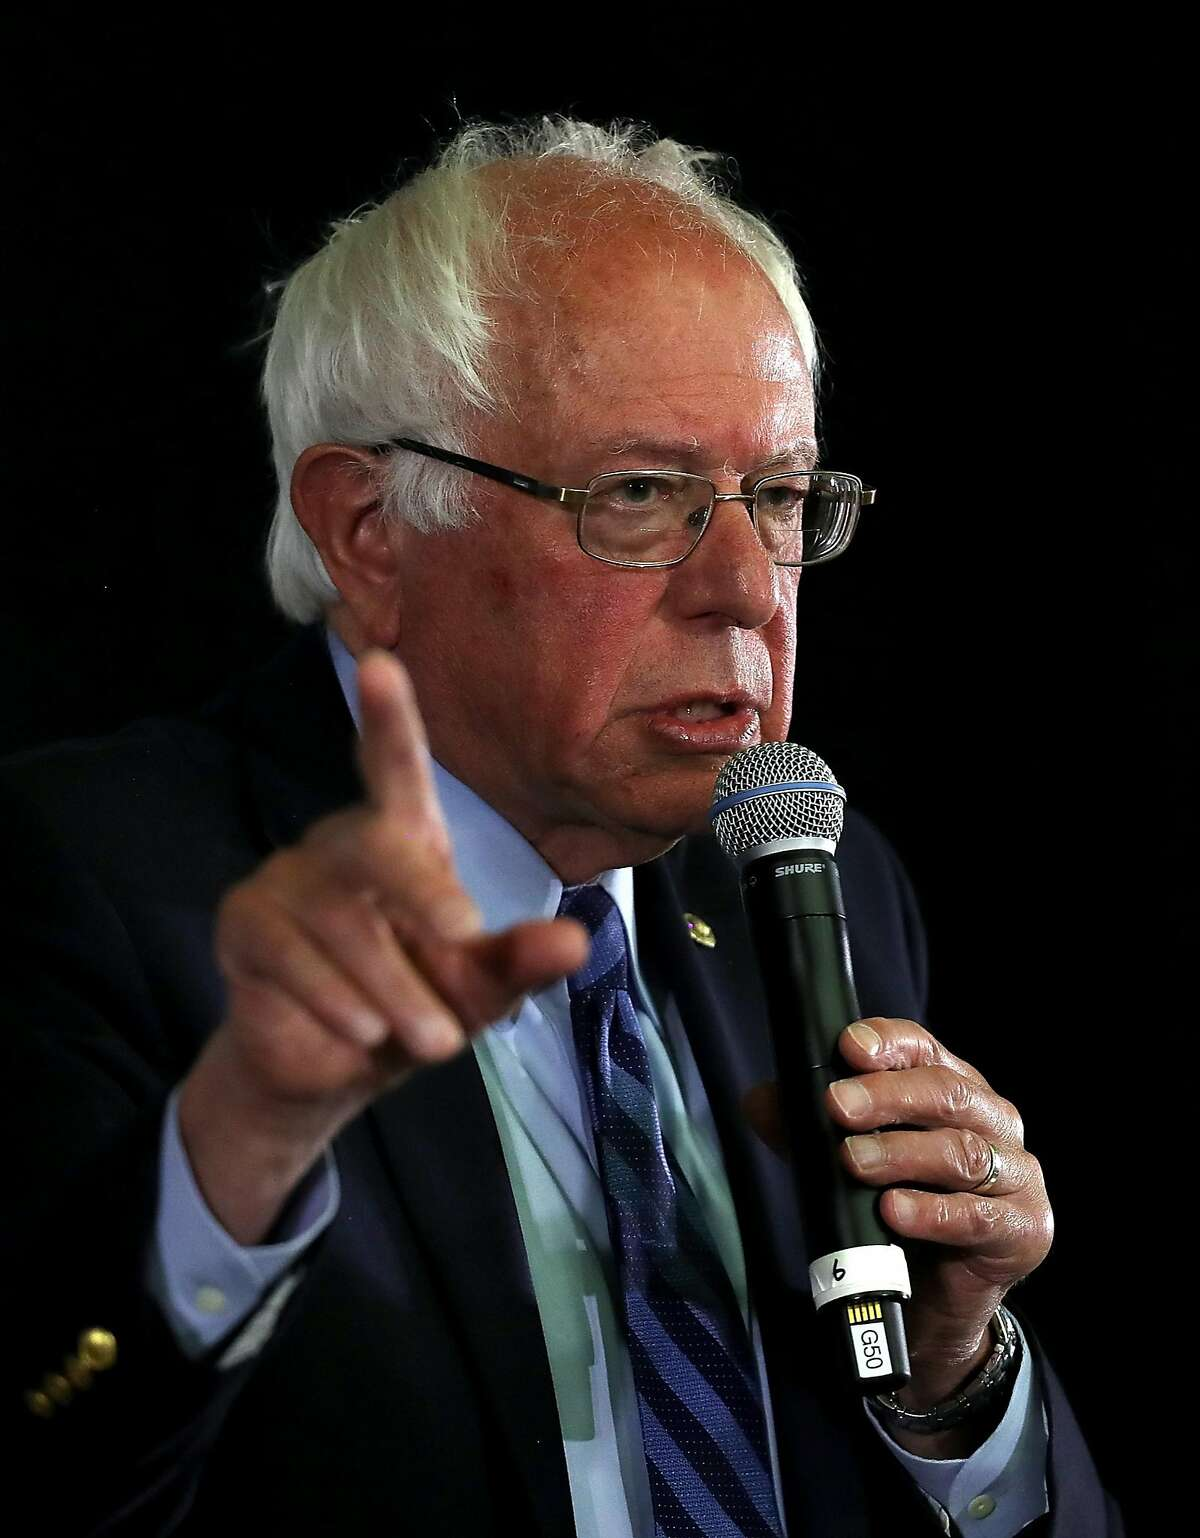 PALO ALTO, CA - JUNE 01: Democratic presidential candidate, U.S. Sen. Bernie Sanders (D-VT) speaks during a panel with Asian-Americans and Pacific Islanders at Cubberley Community Center on June 1, 2016 in Palo Alto, California. With less than a week to go before the California presidential primary, Sanders is campaigning in northern California. (Photo by Justin Sullivan/Getty Images)